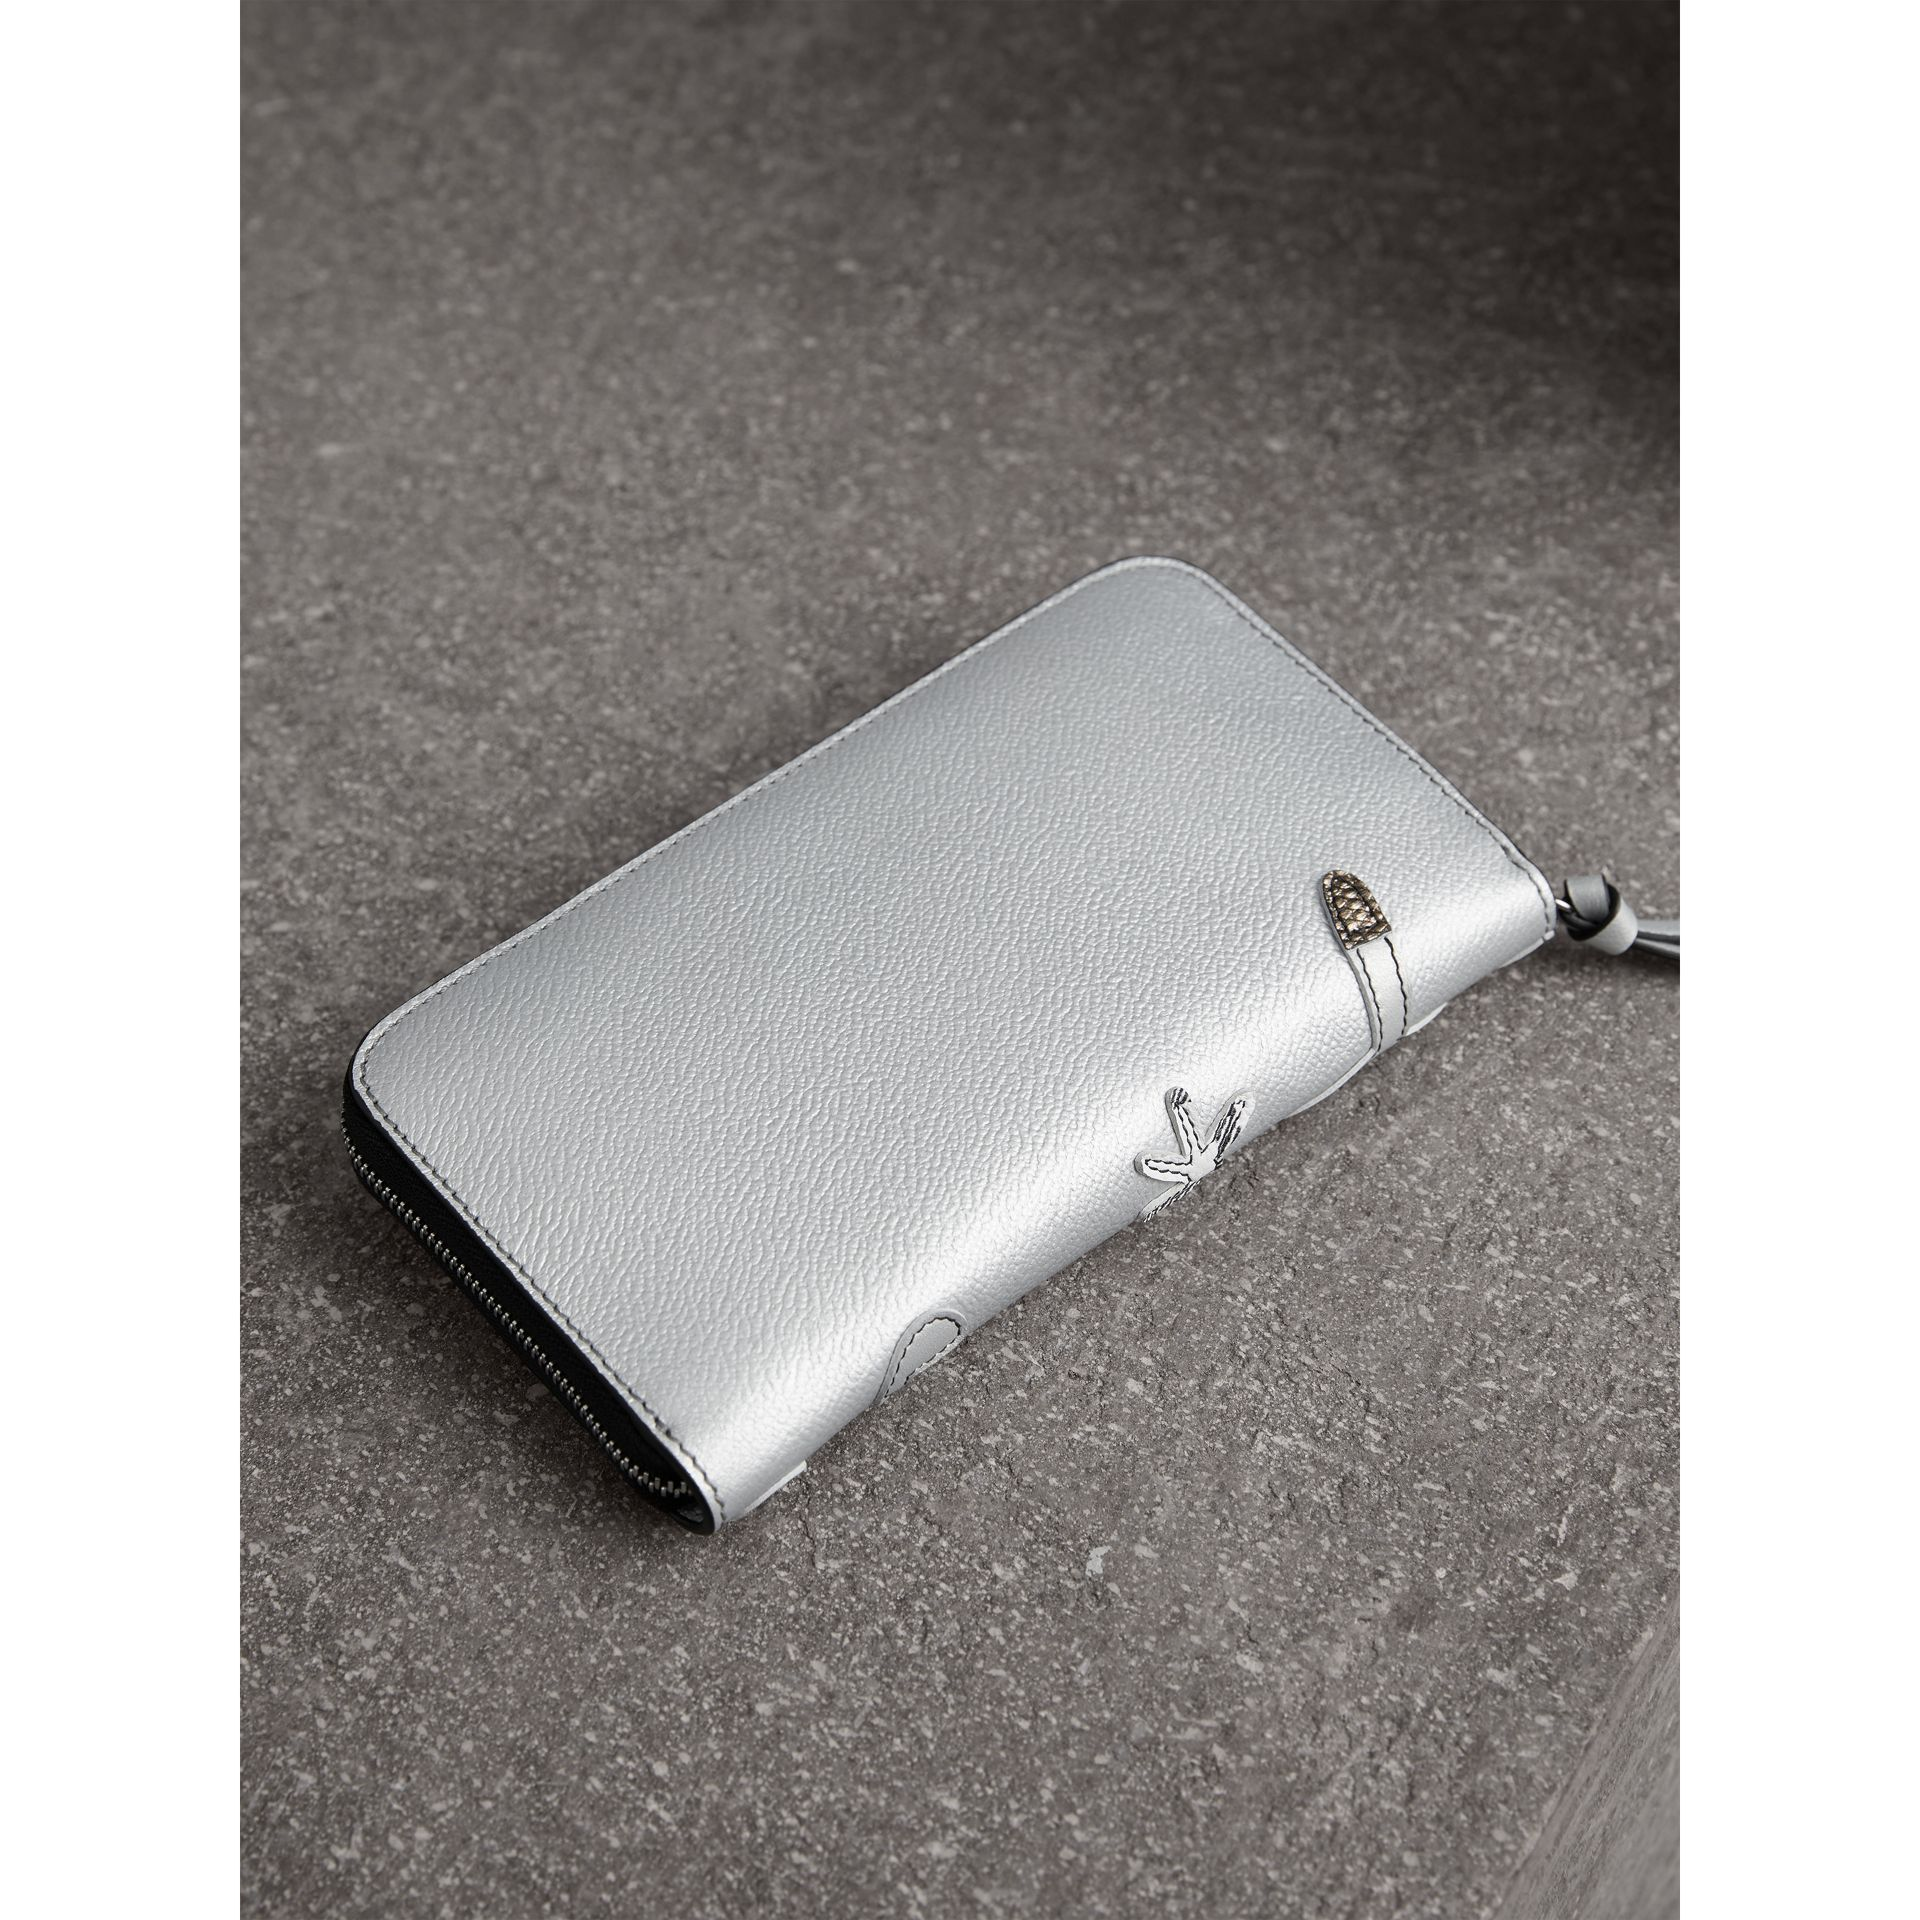 Creature Appliqué Metallic Leather Ziparound Wallet in Silver - Women | Burberry Australia - gallery image 2